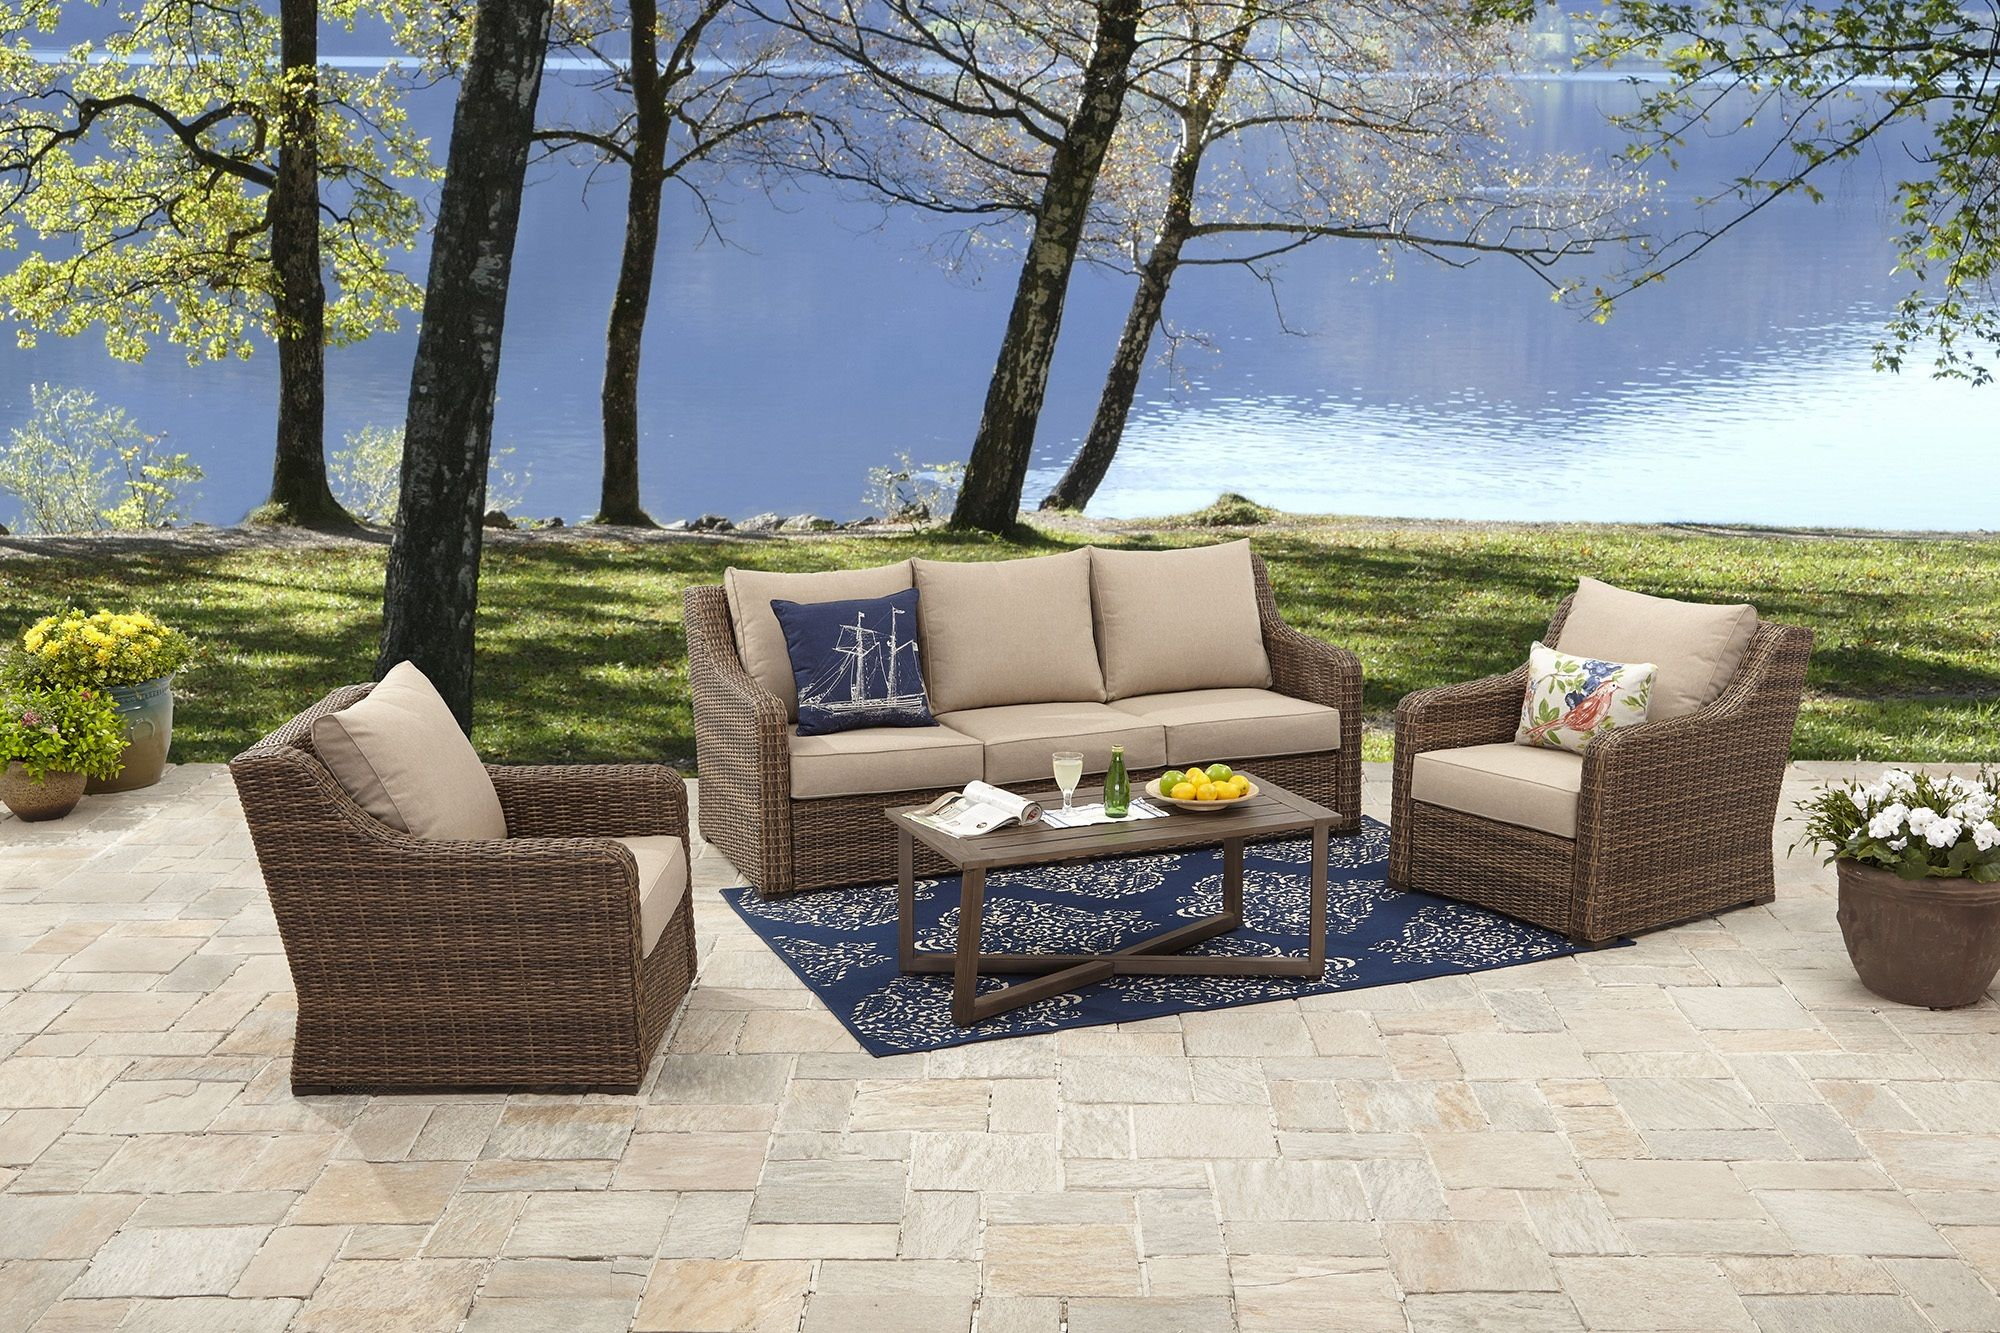 9dc8d1af41849bae51abced8237896c4 - Furniture By Better Homes And Gardens